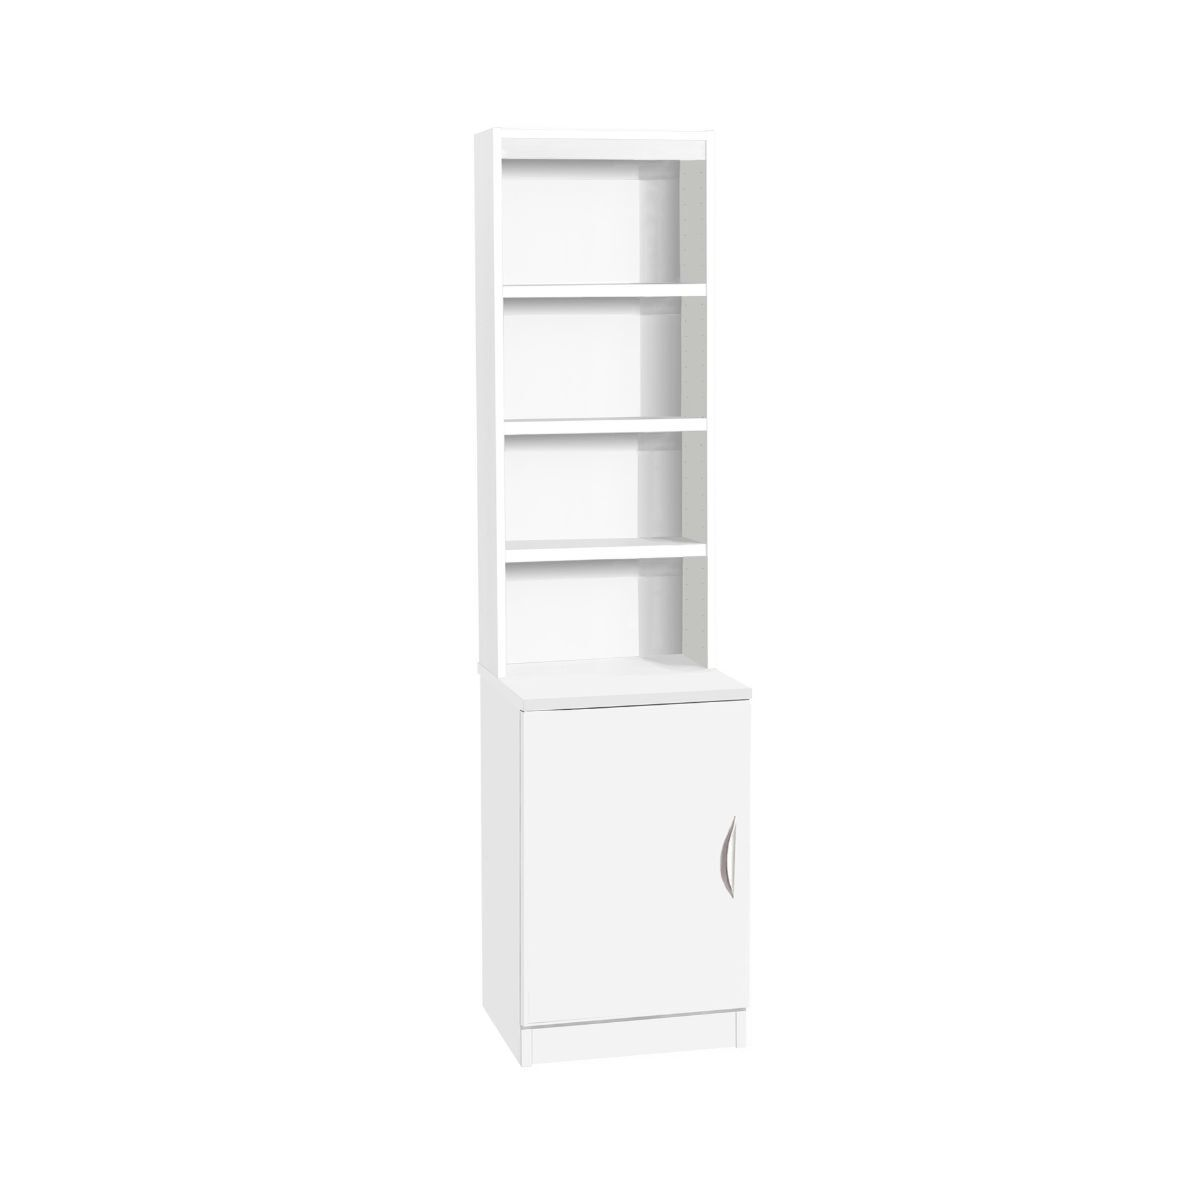 R White Desk Height Wide Cupboard 48cm with Overshelving White Satin